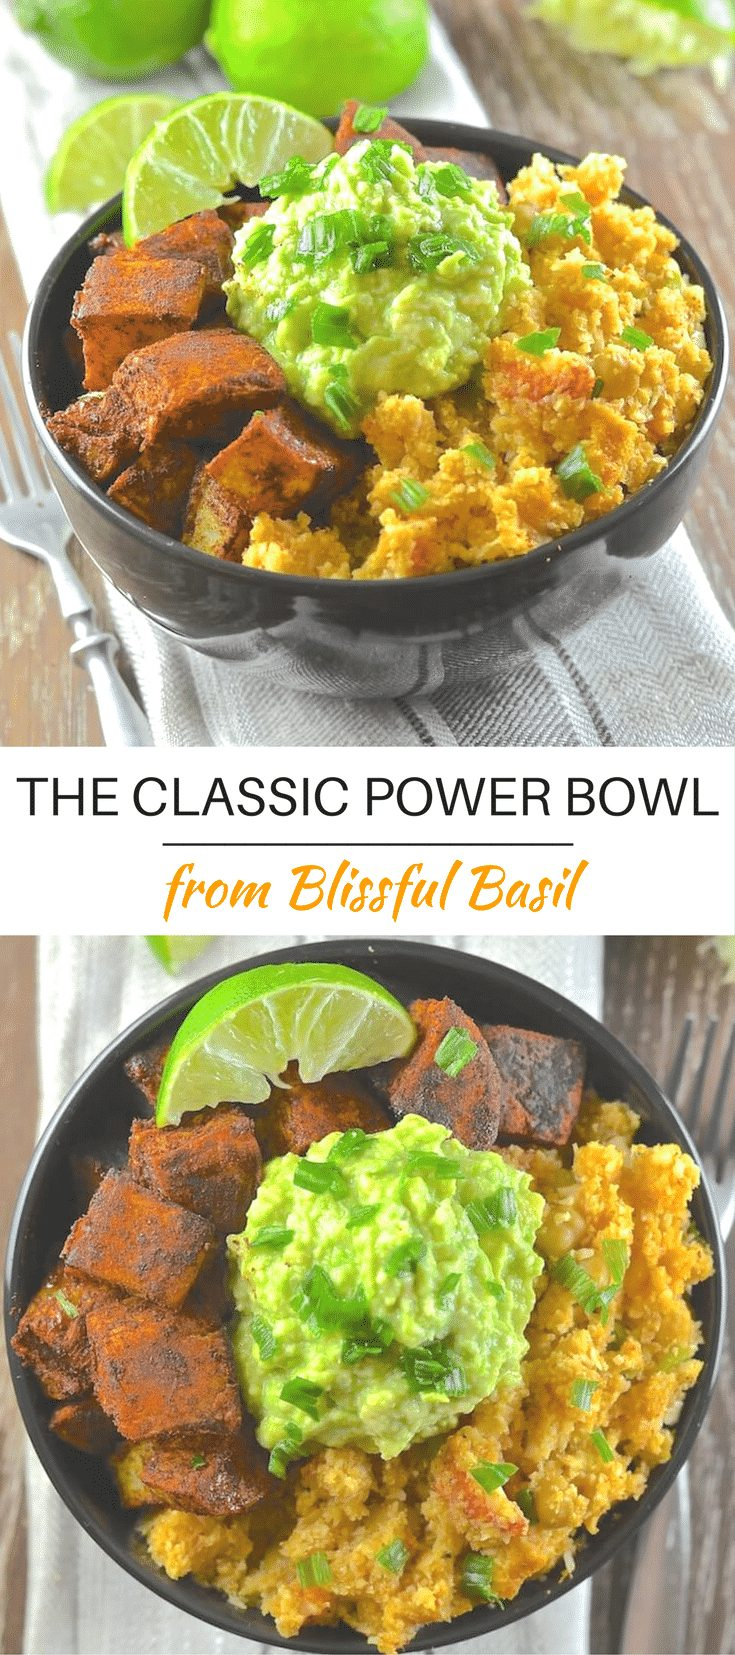 Find your bliss with The Classic Power Bowl from Blissful Basil. Spicy cauliflower rice, warming sweet potatoes & garlicky avocado mash.